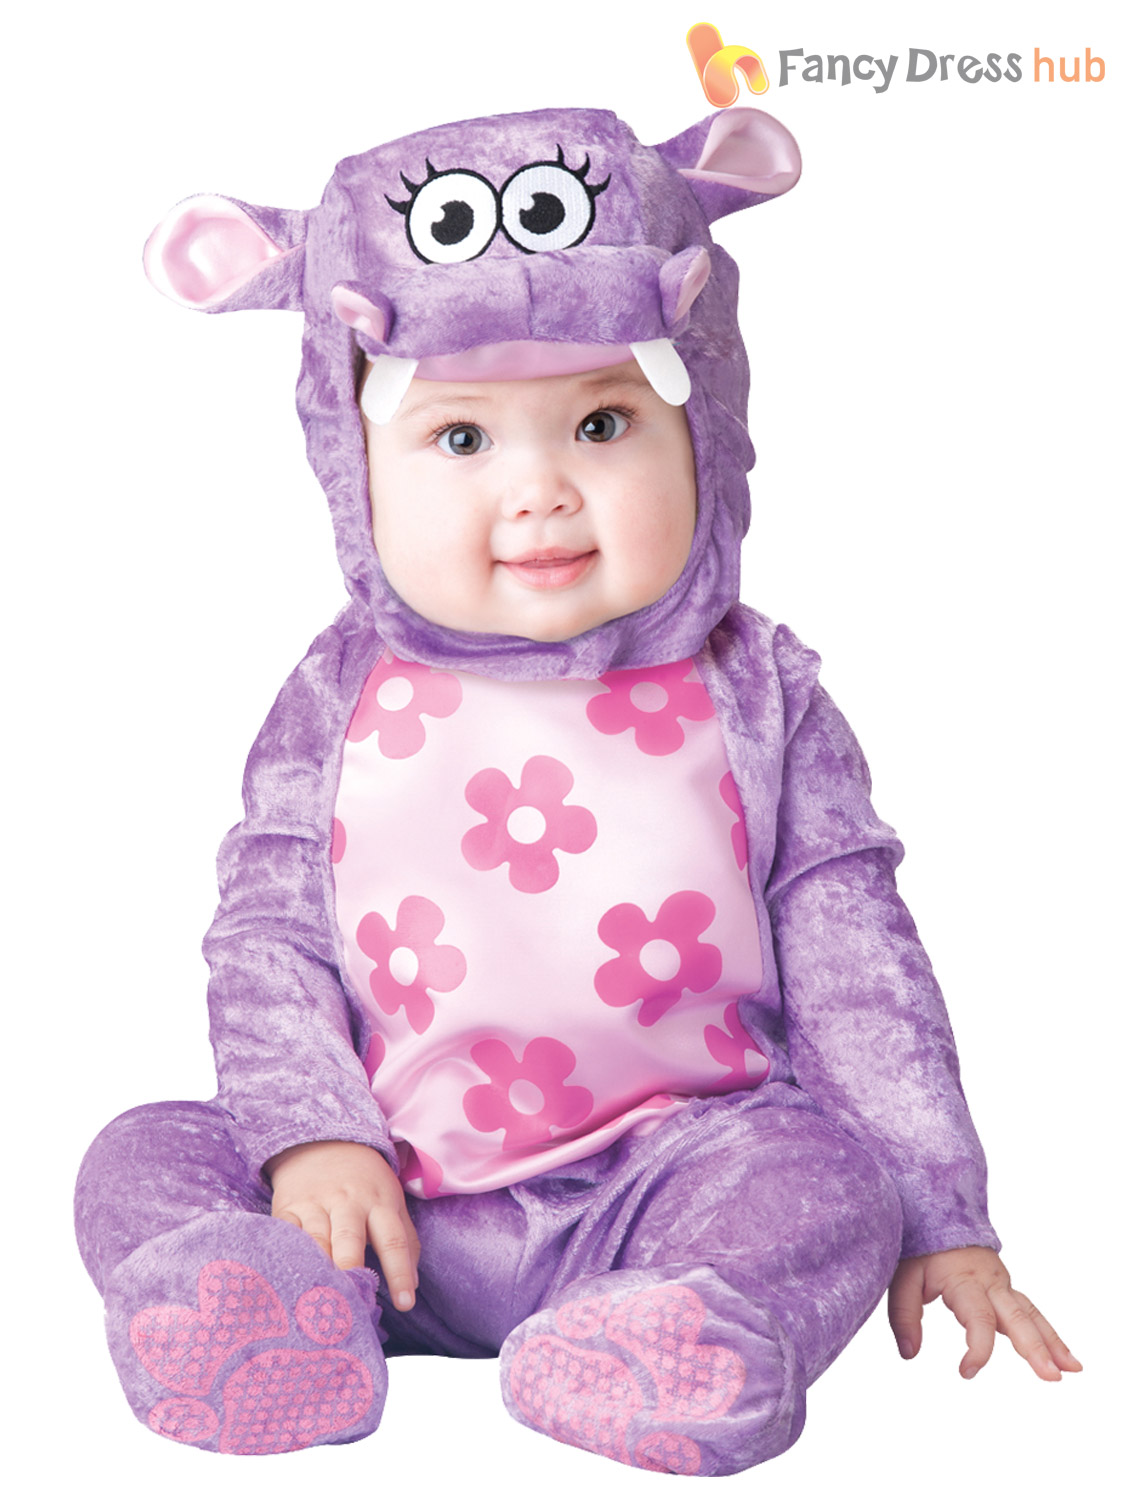 Cute Baby Animal: Your task is to pick an animal costume for baby Emily. She is very fond on animals but she doesnt yet know which one is her favorite. Go through all the options available and decide if youd rather dress up the baby in a rabbit costume or like a friendly fluffy panda. Do your best to make Emily look as cute as possible. Have fun!